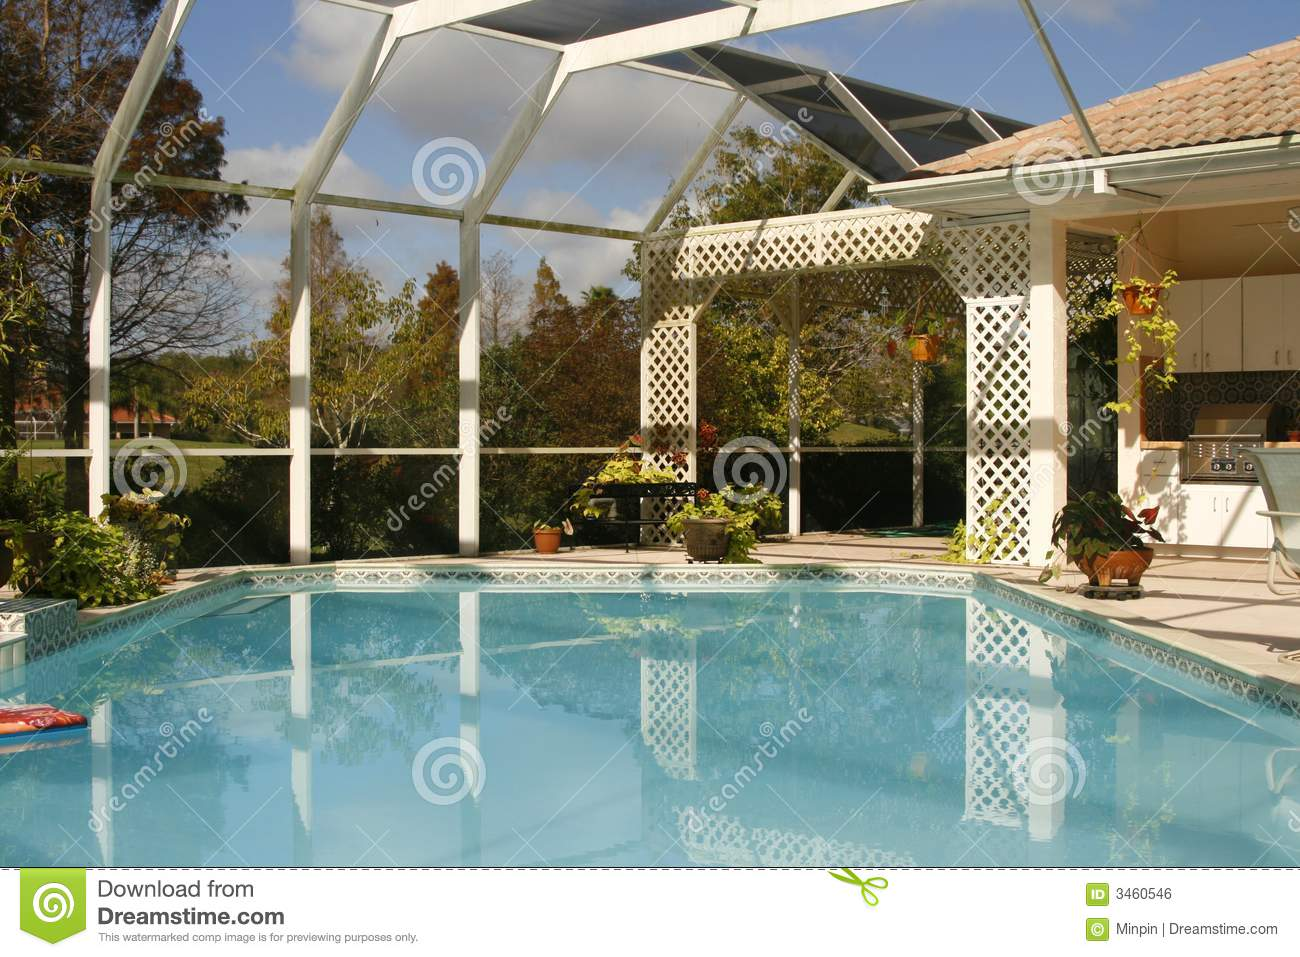 Swimming Pool Screening : Screened lanai with pool royalty free stock image